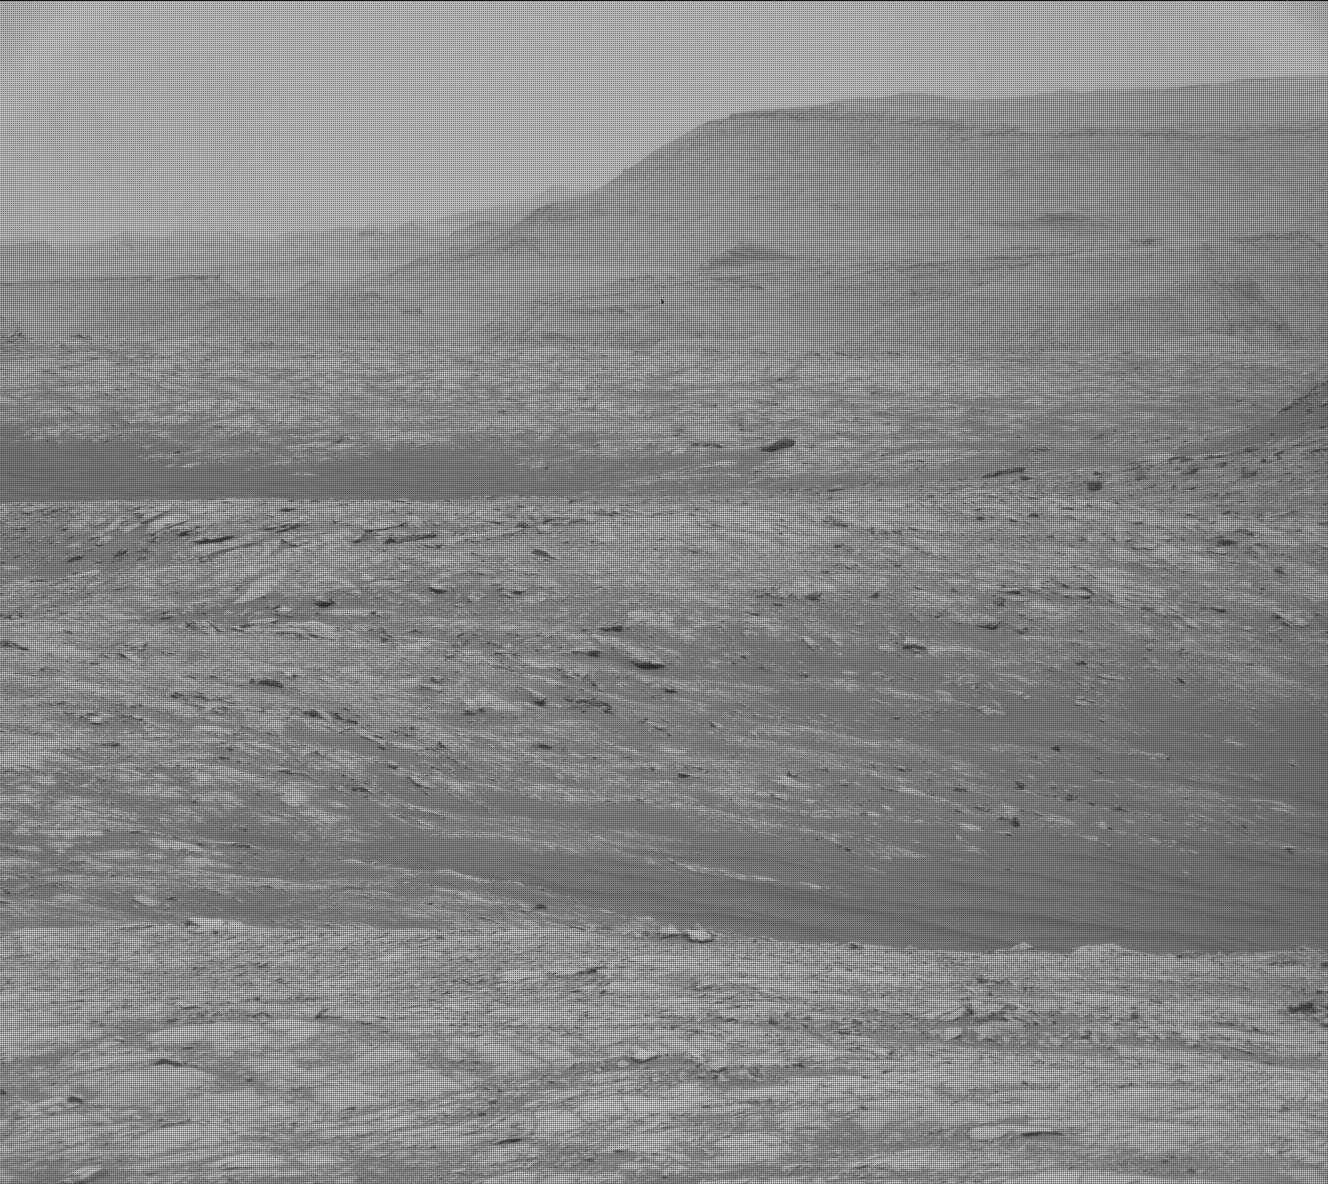 Nasa's Mars rover Curiosity acquired this image using its Mast Camera (Mastcam) on Sol 2765